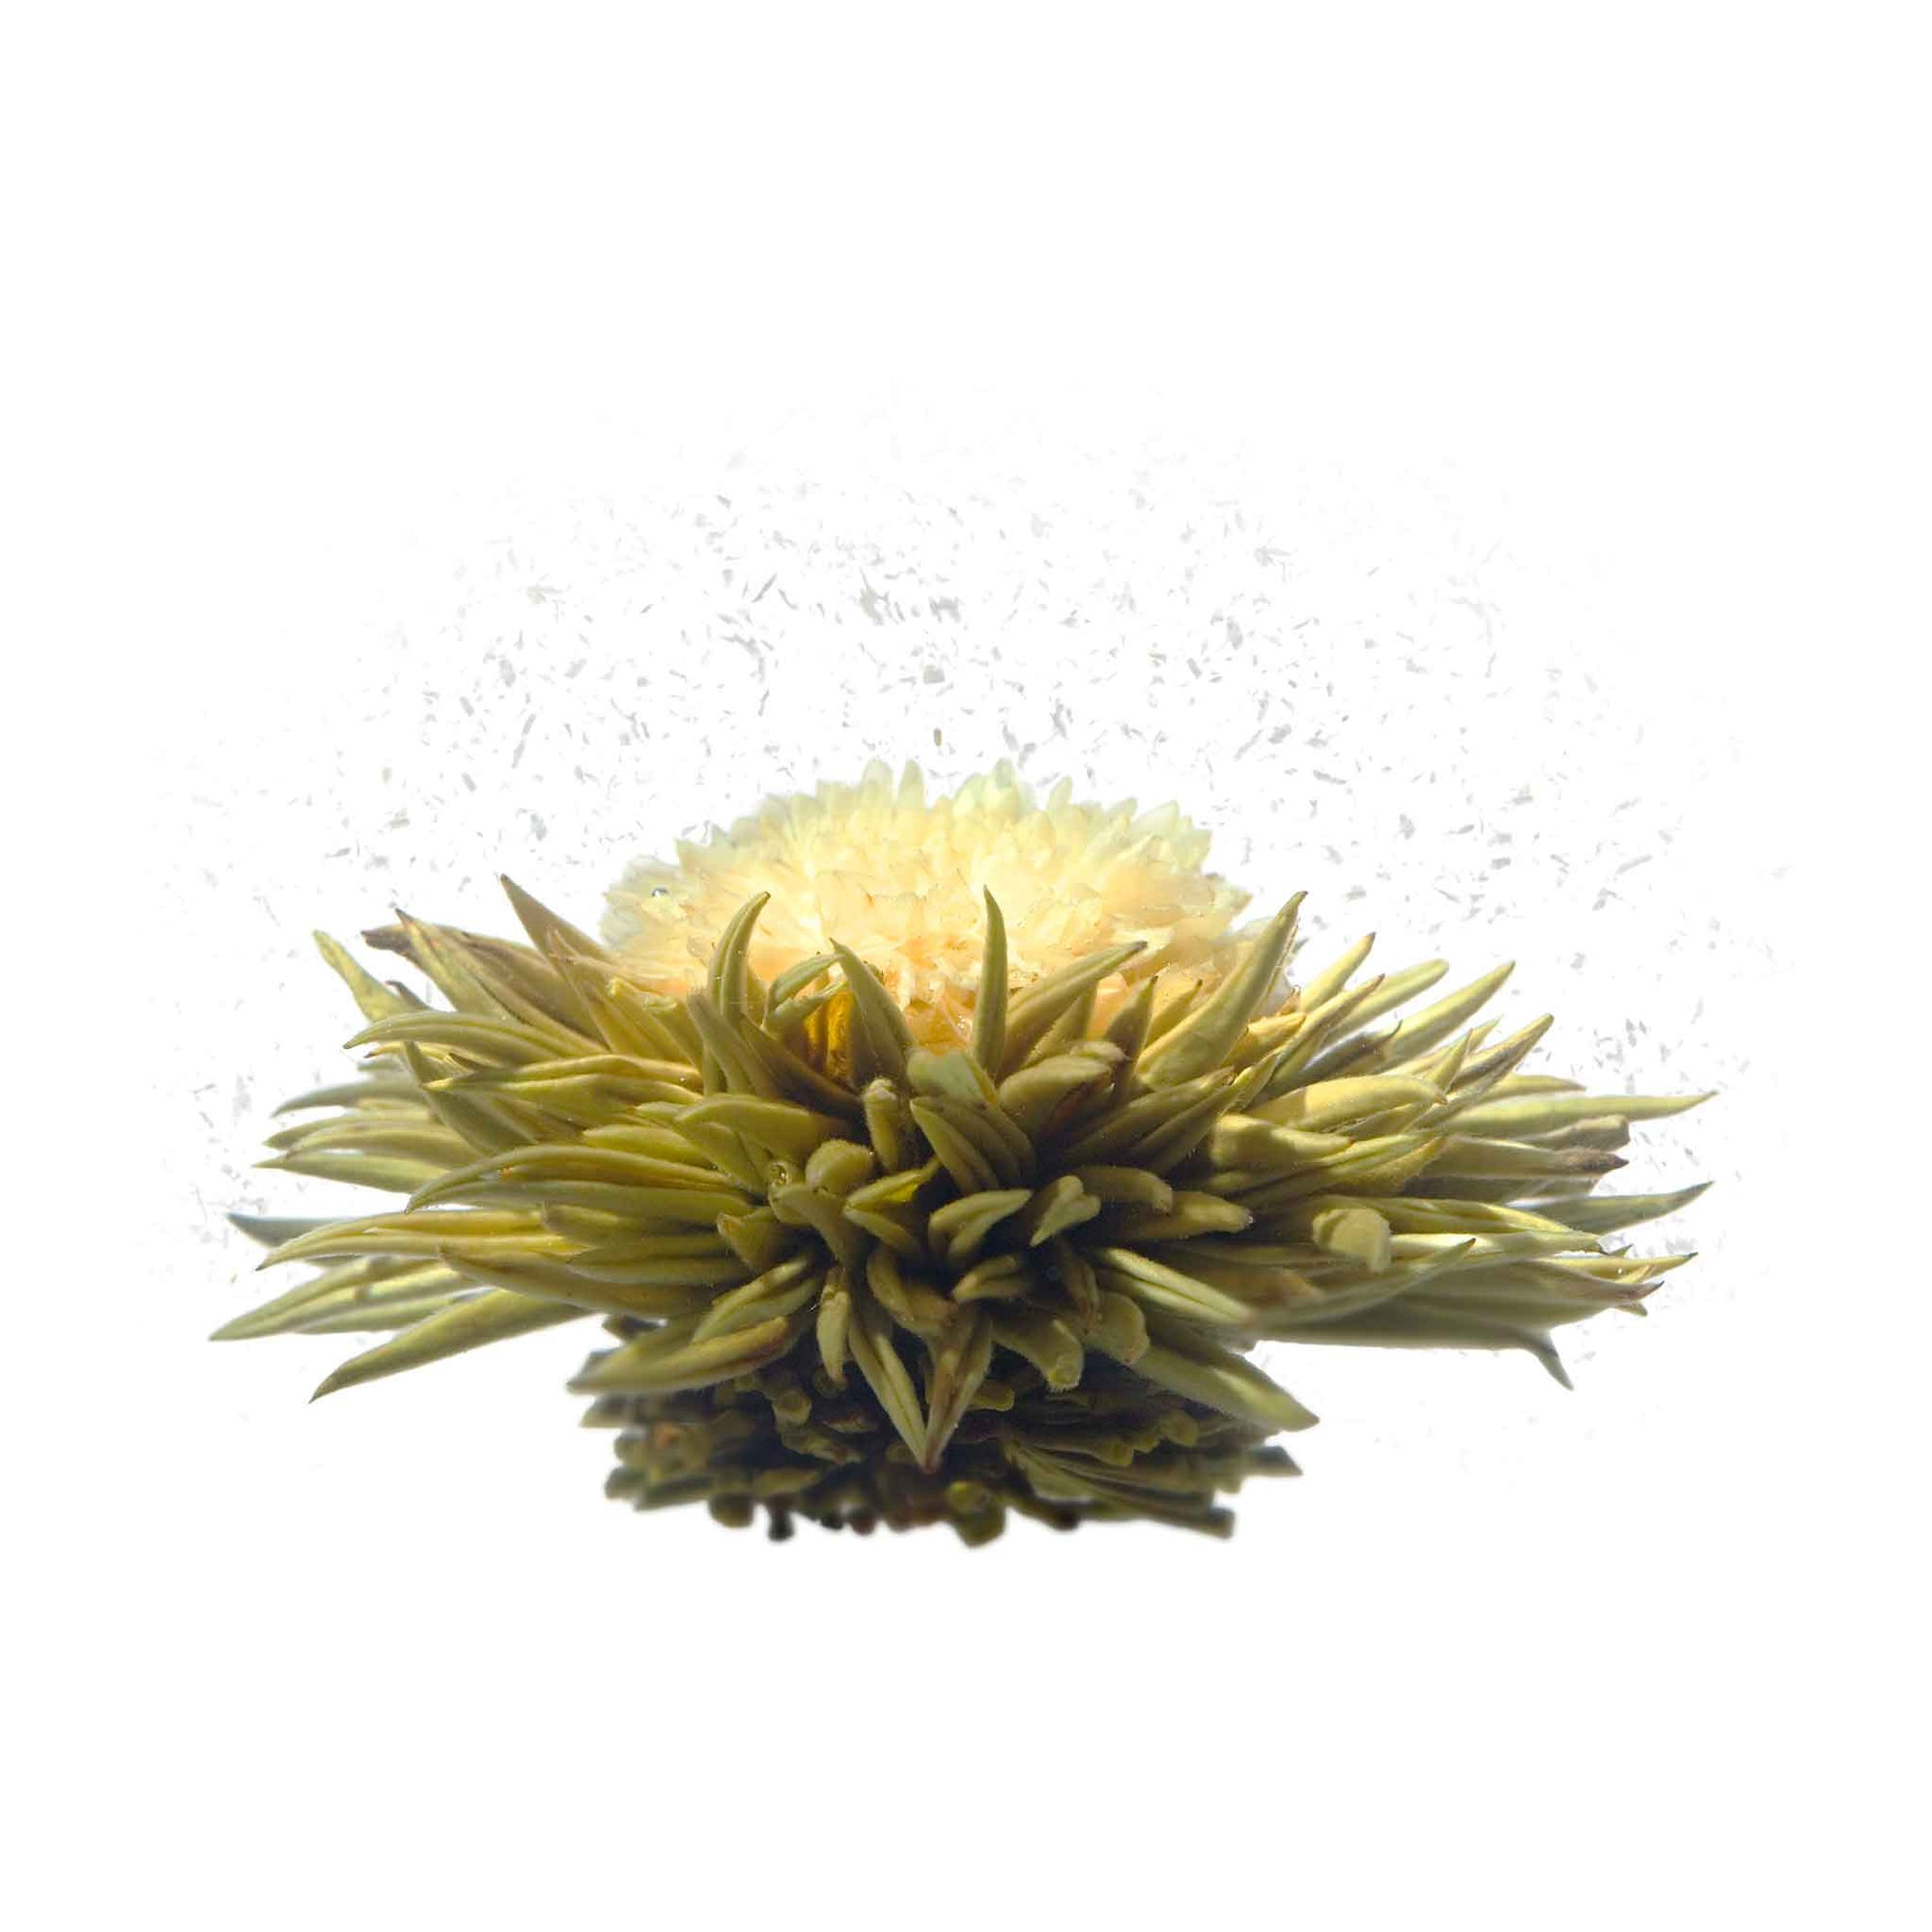 teaposy let it snow blooming tea, with chrysanthemum flower and coconut flakes